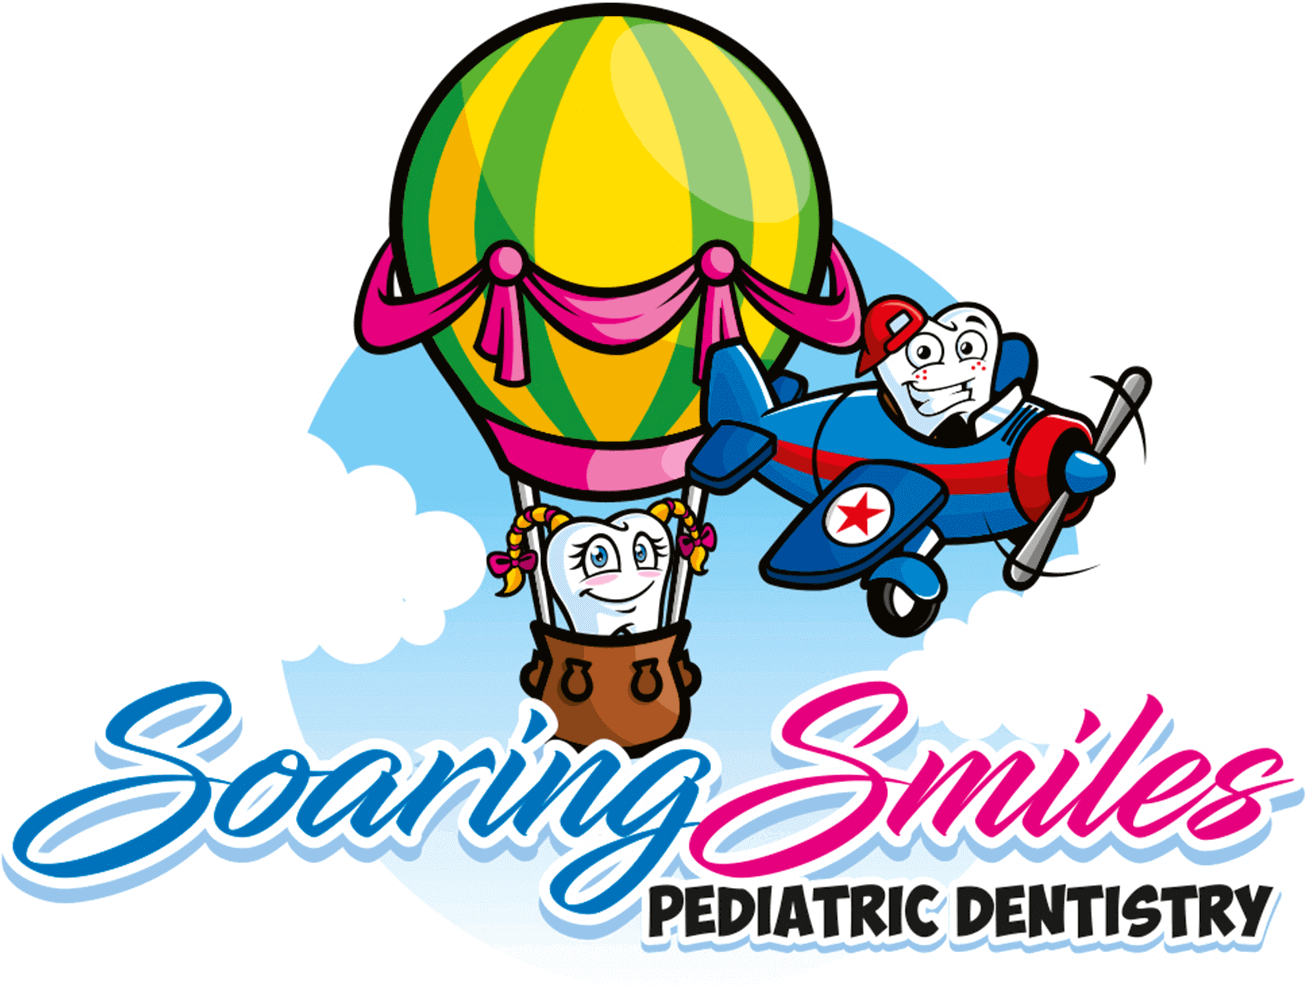 Soaring Smiles Pediatric Dentistry